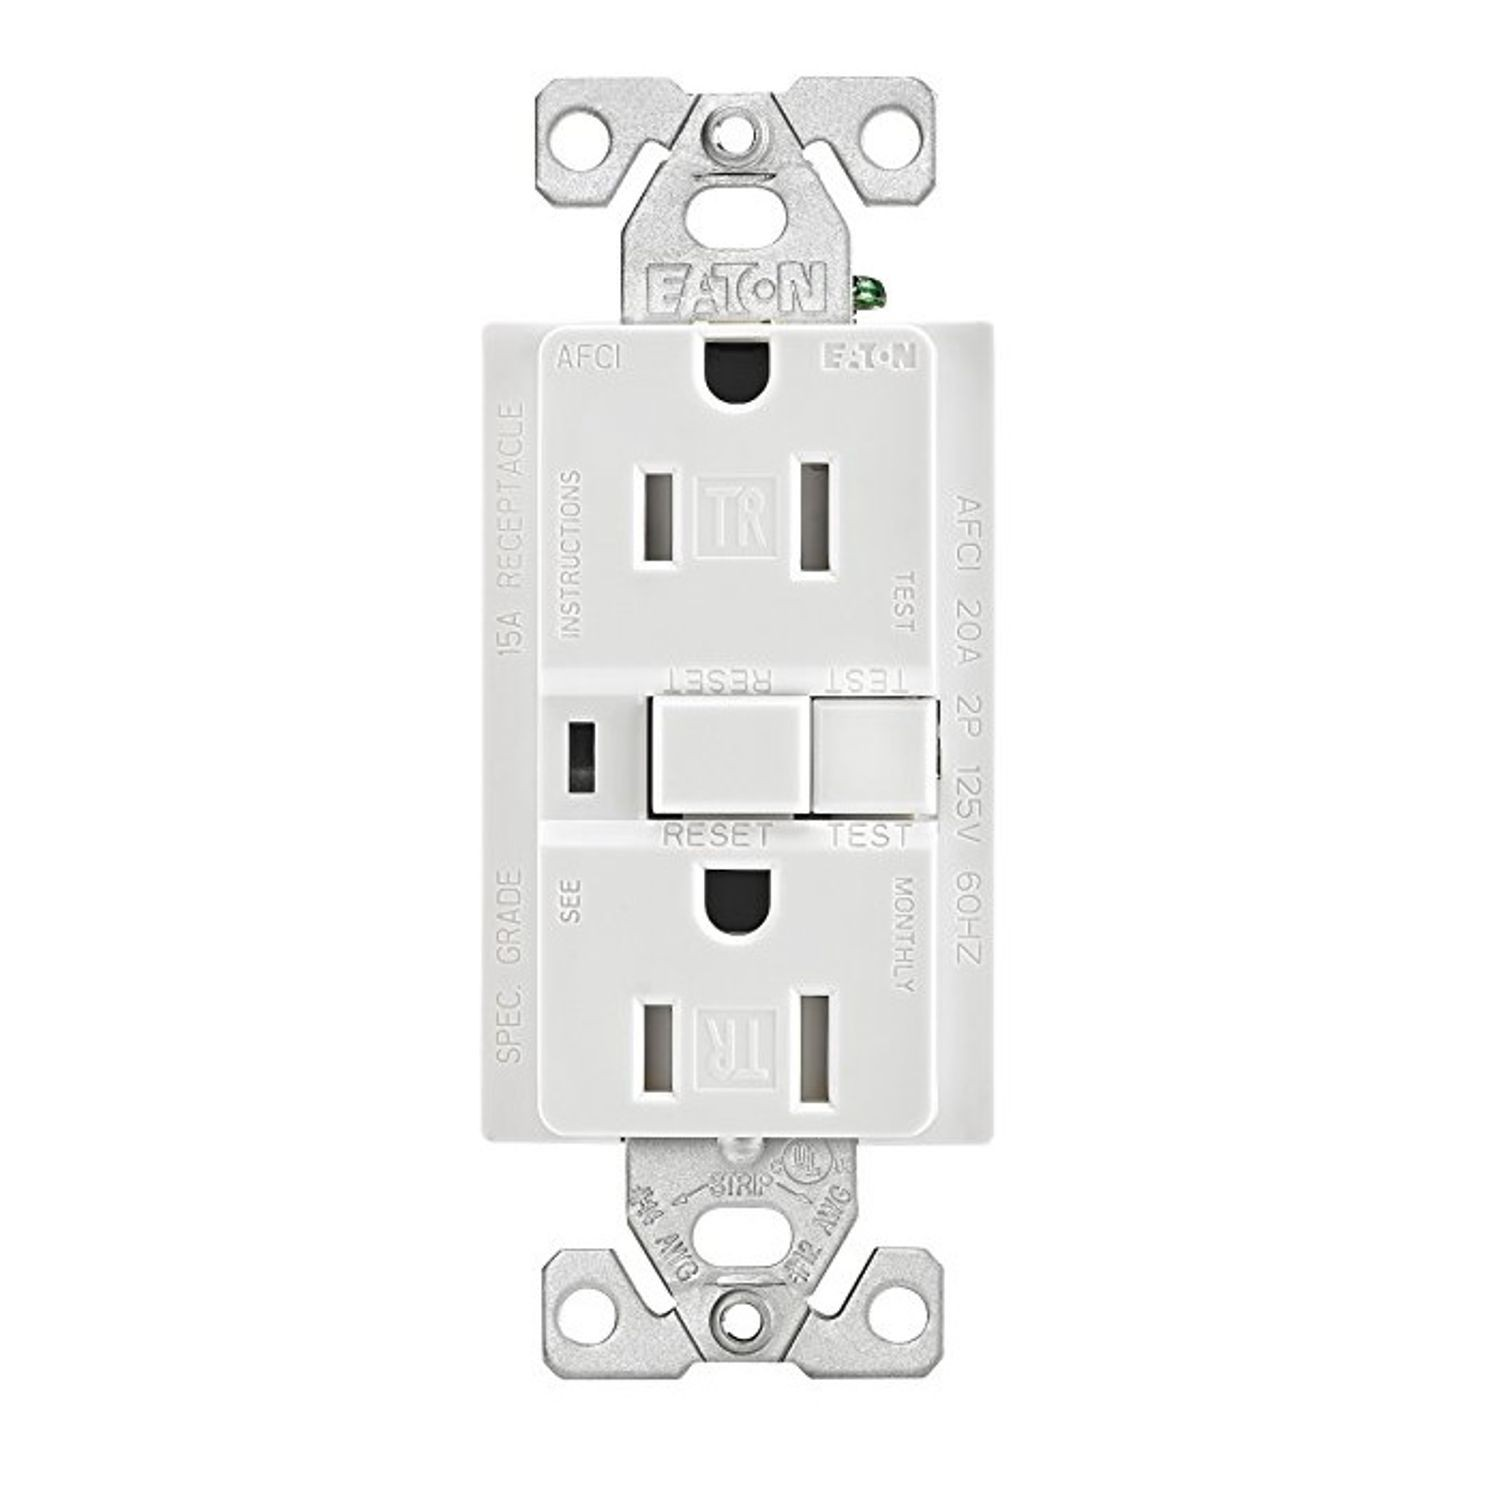 hight resolution of eaton wiring devices trafci15w duplex tamper resistant afci receptacle 125 vac 15 a 2 poles 3 wires white